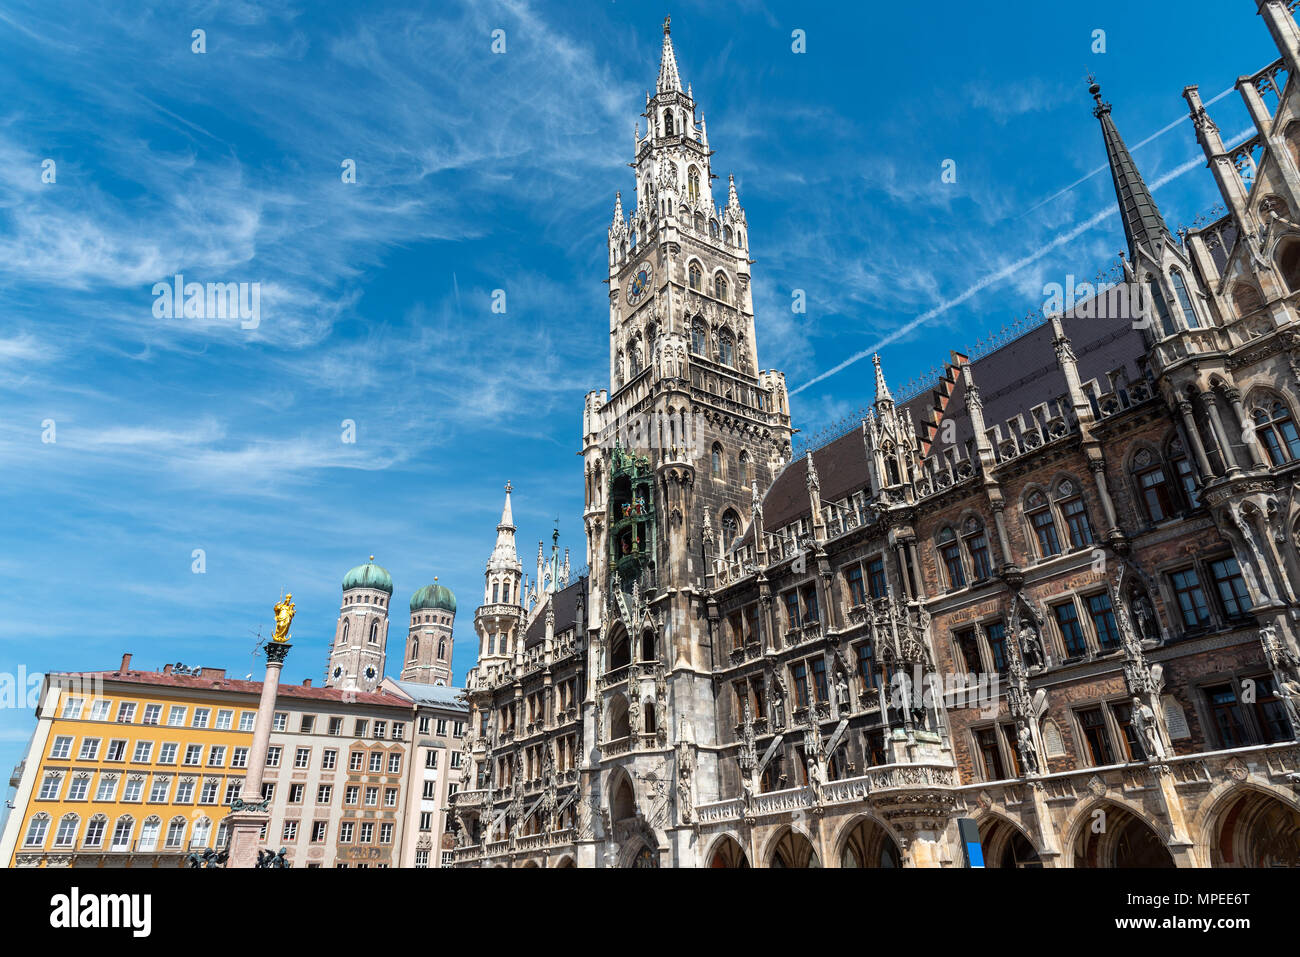 The townhall at the Marienplatz in Munich with the towers of the Frauenkirche in the back - Stock Image